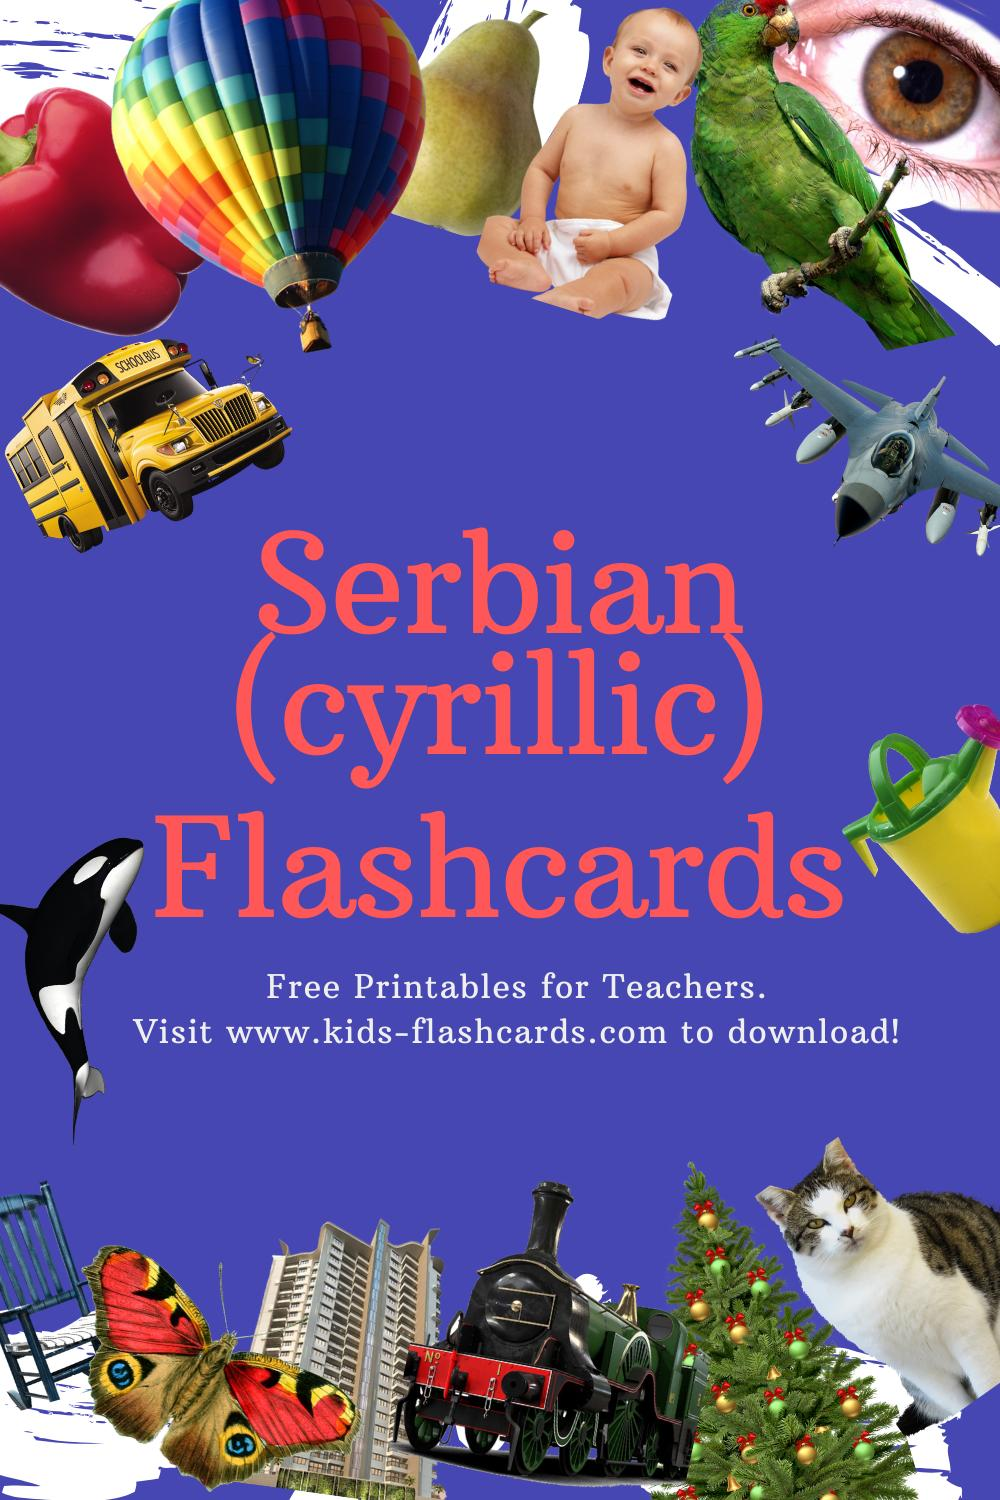 Worksheets to learn Serbian(cyrillic) language